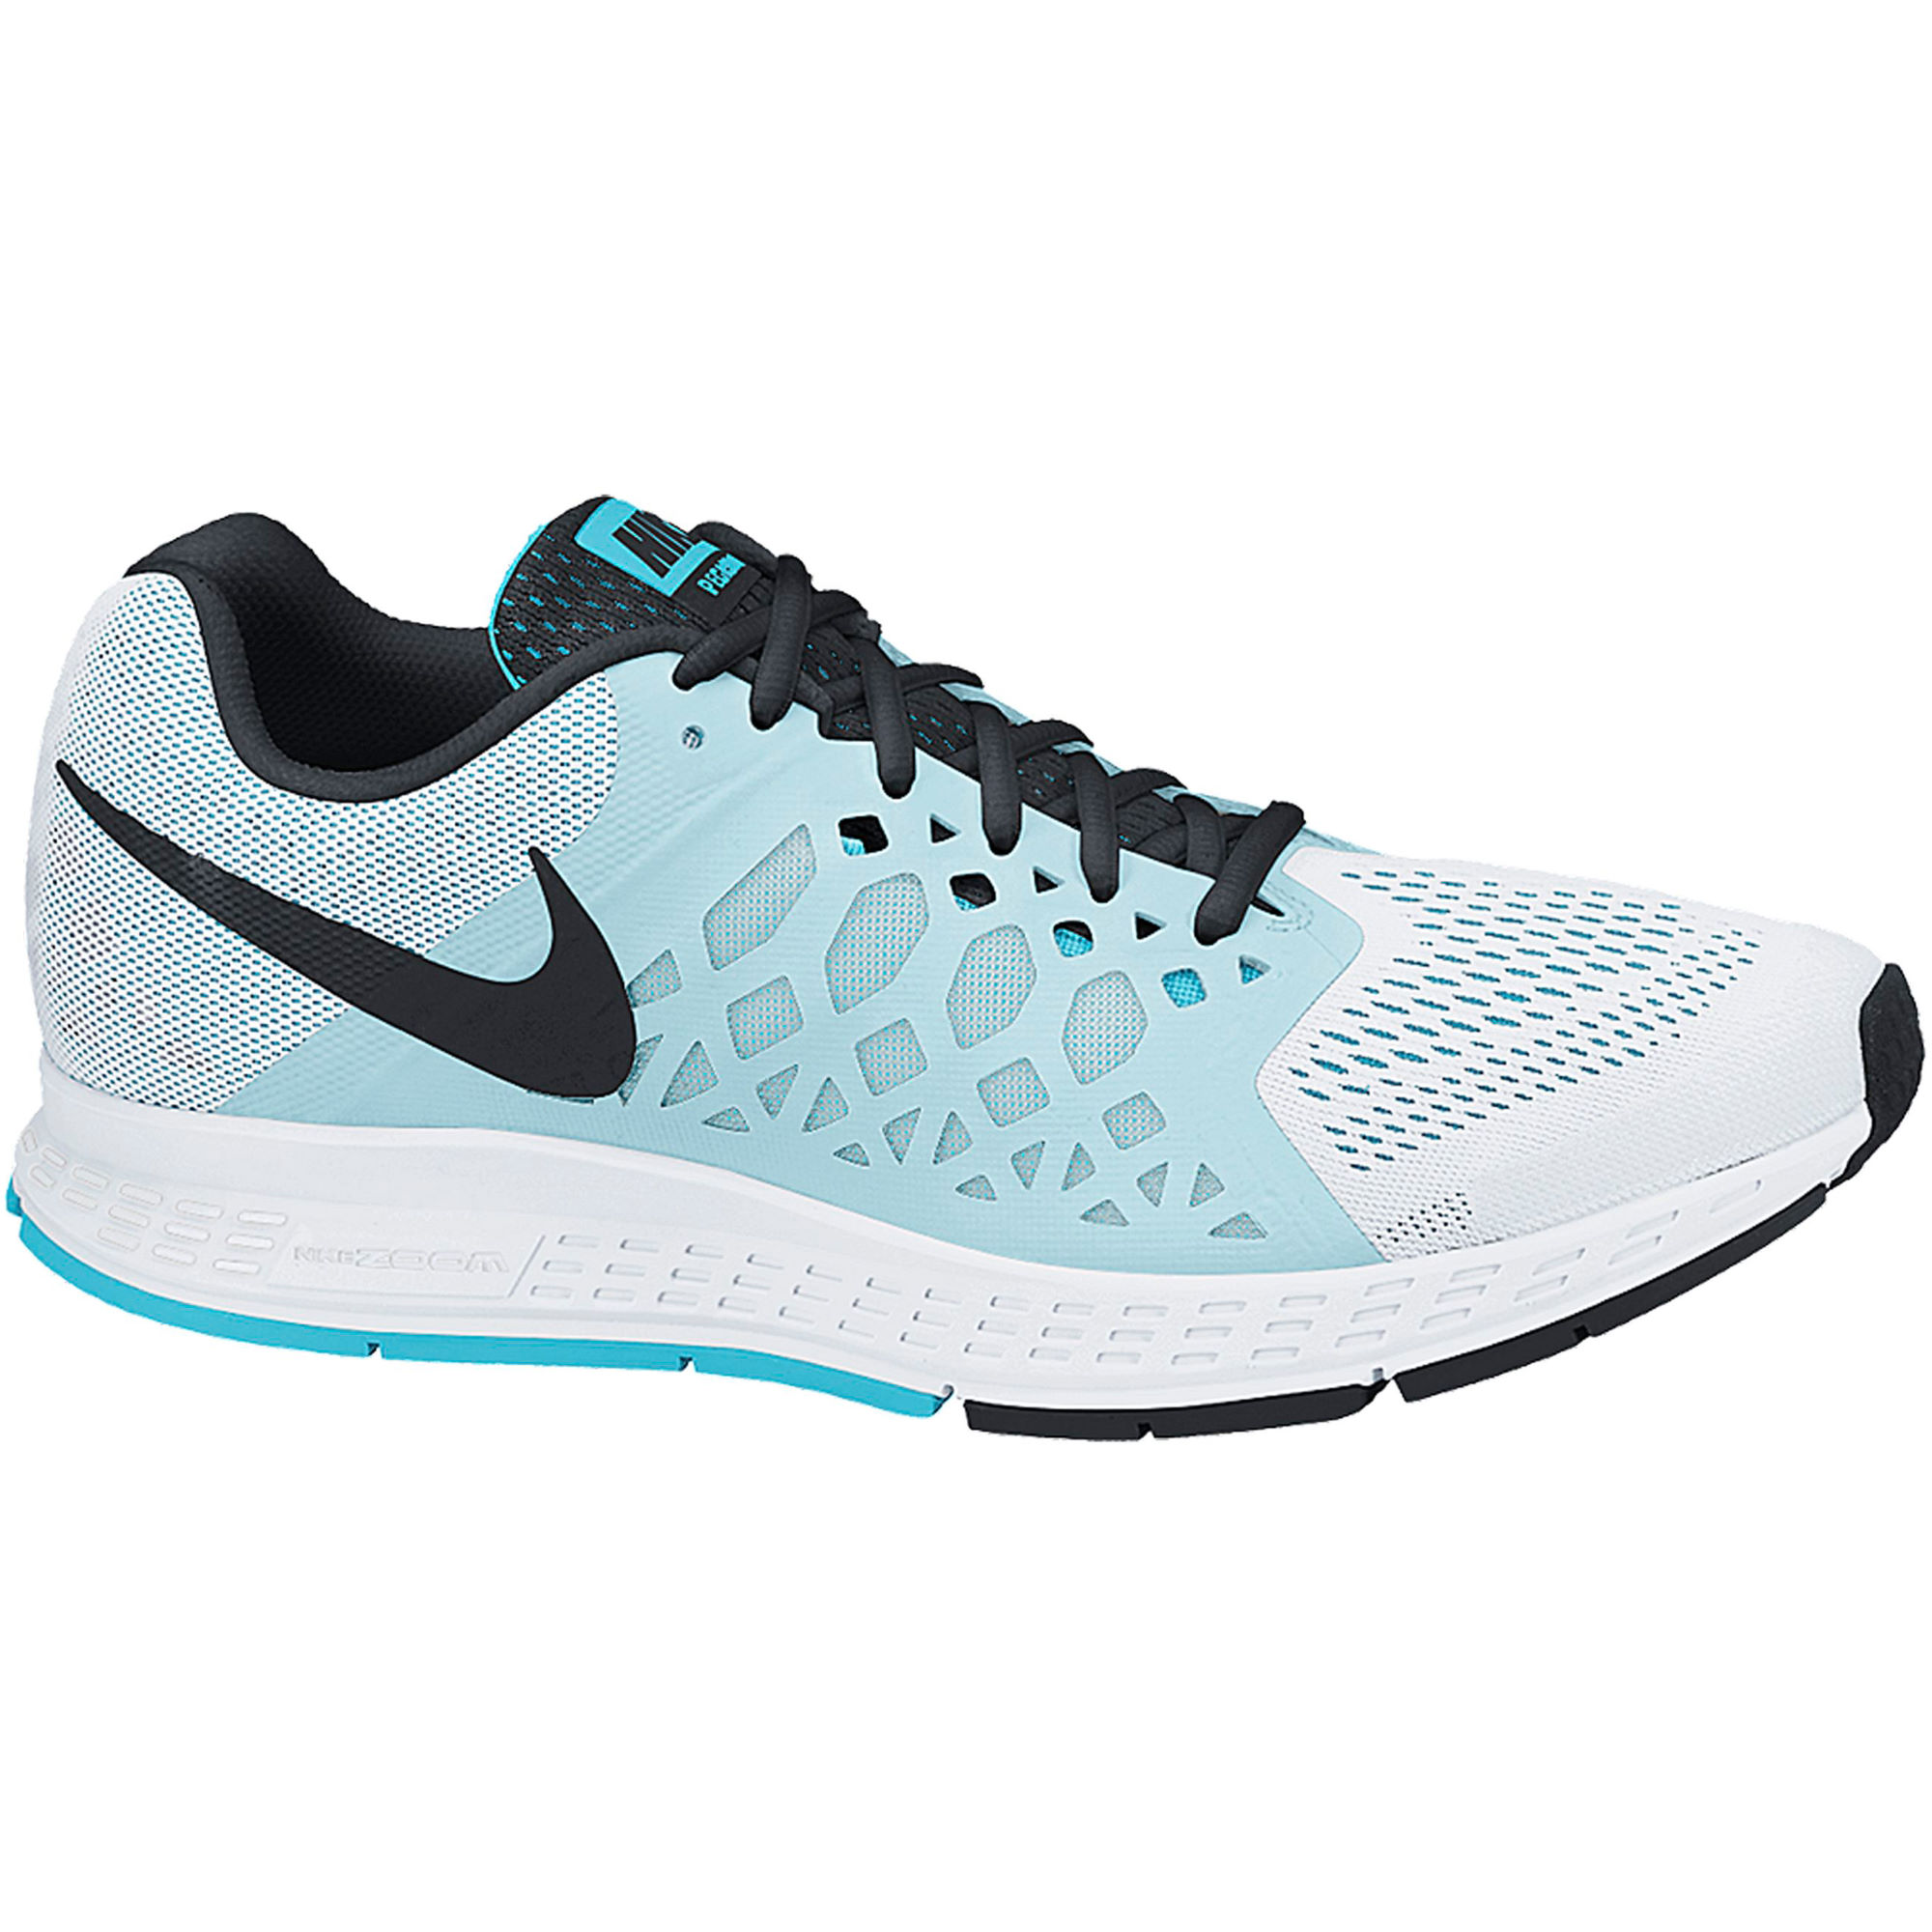 Nike Air Zoom Pegasus 33 Women's Running Shoes Matte Silver